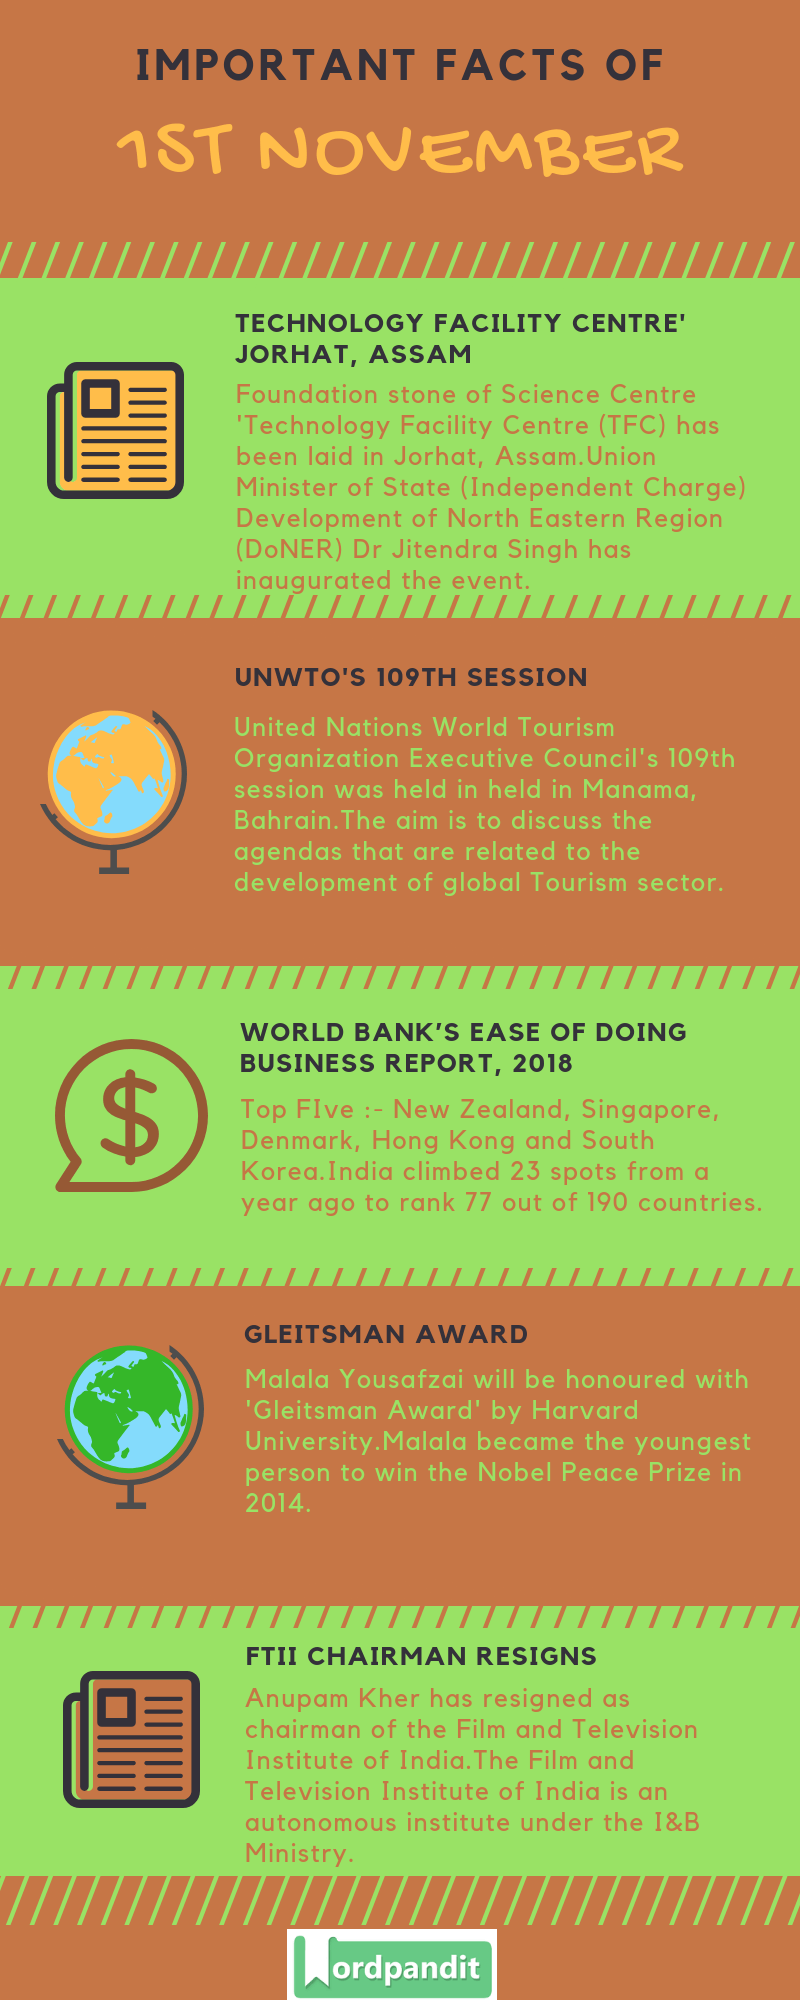 Daily Current Affairs 1 November 2018 Current Affairs Quiz 1 November 2018 Current Affairs Infographic